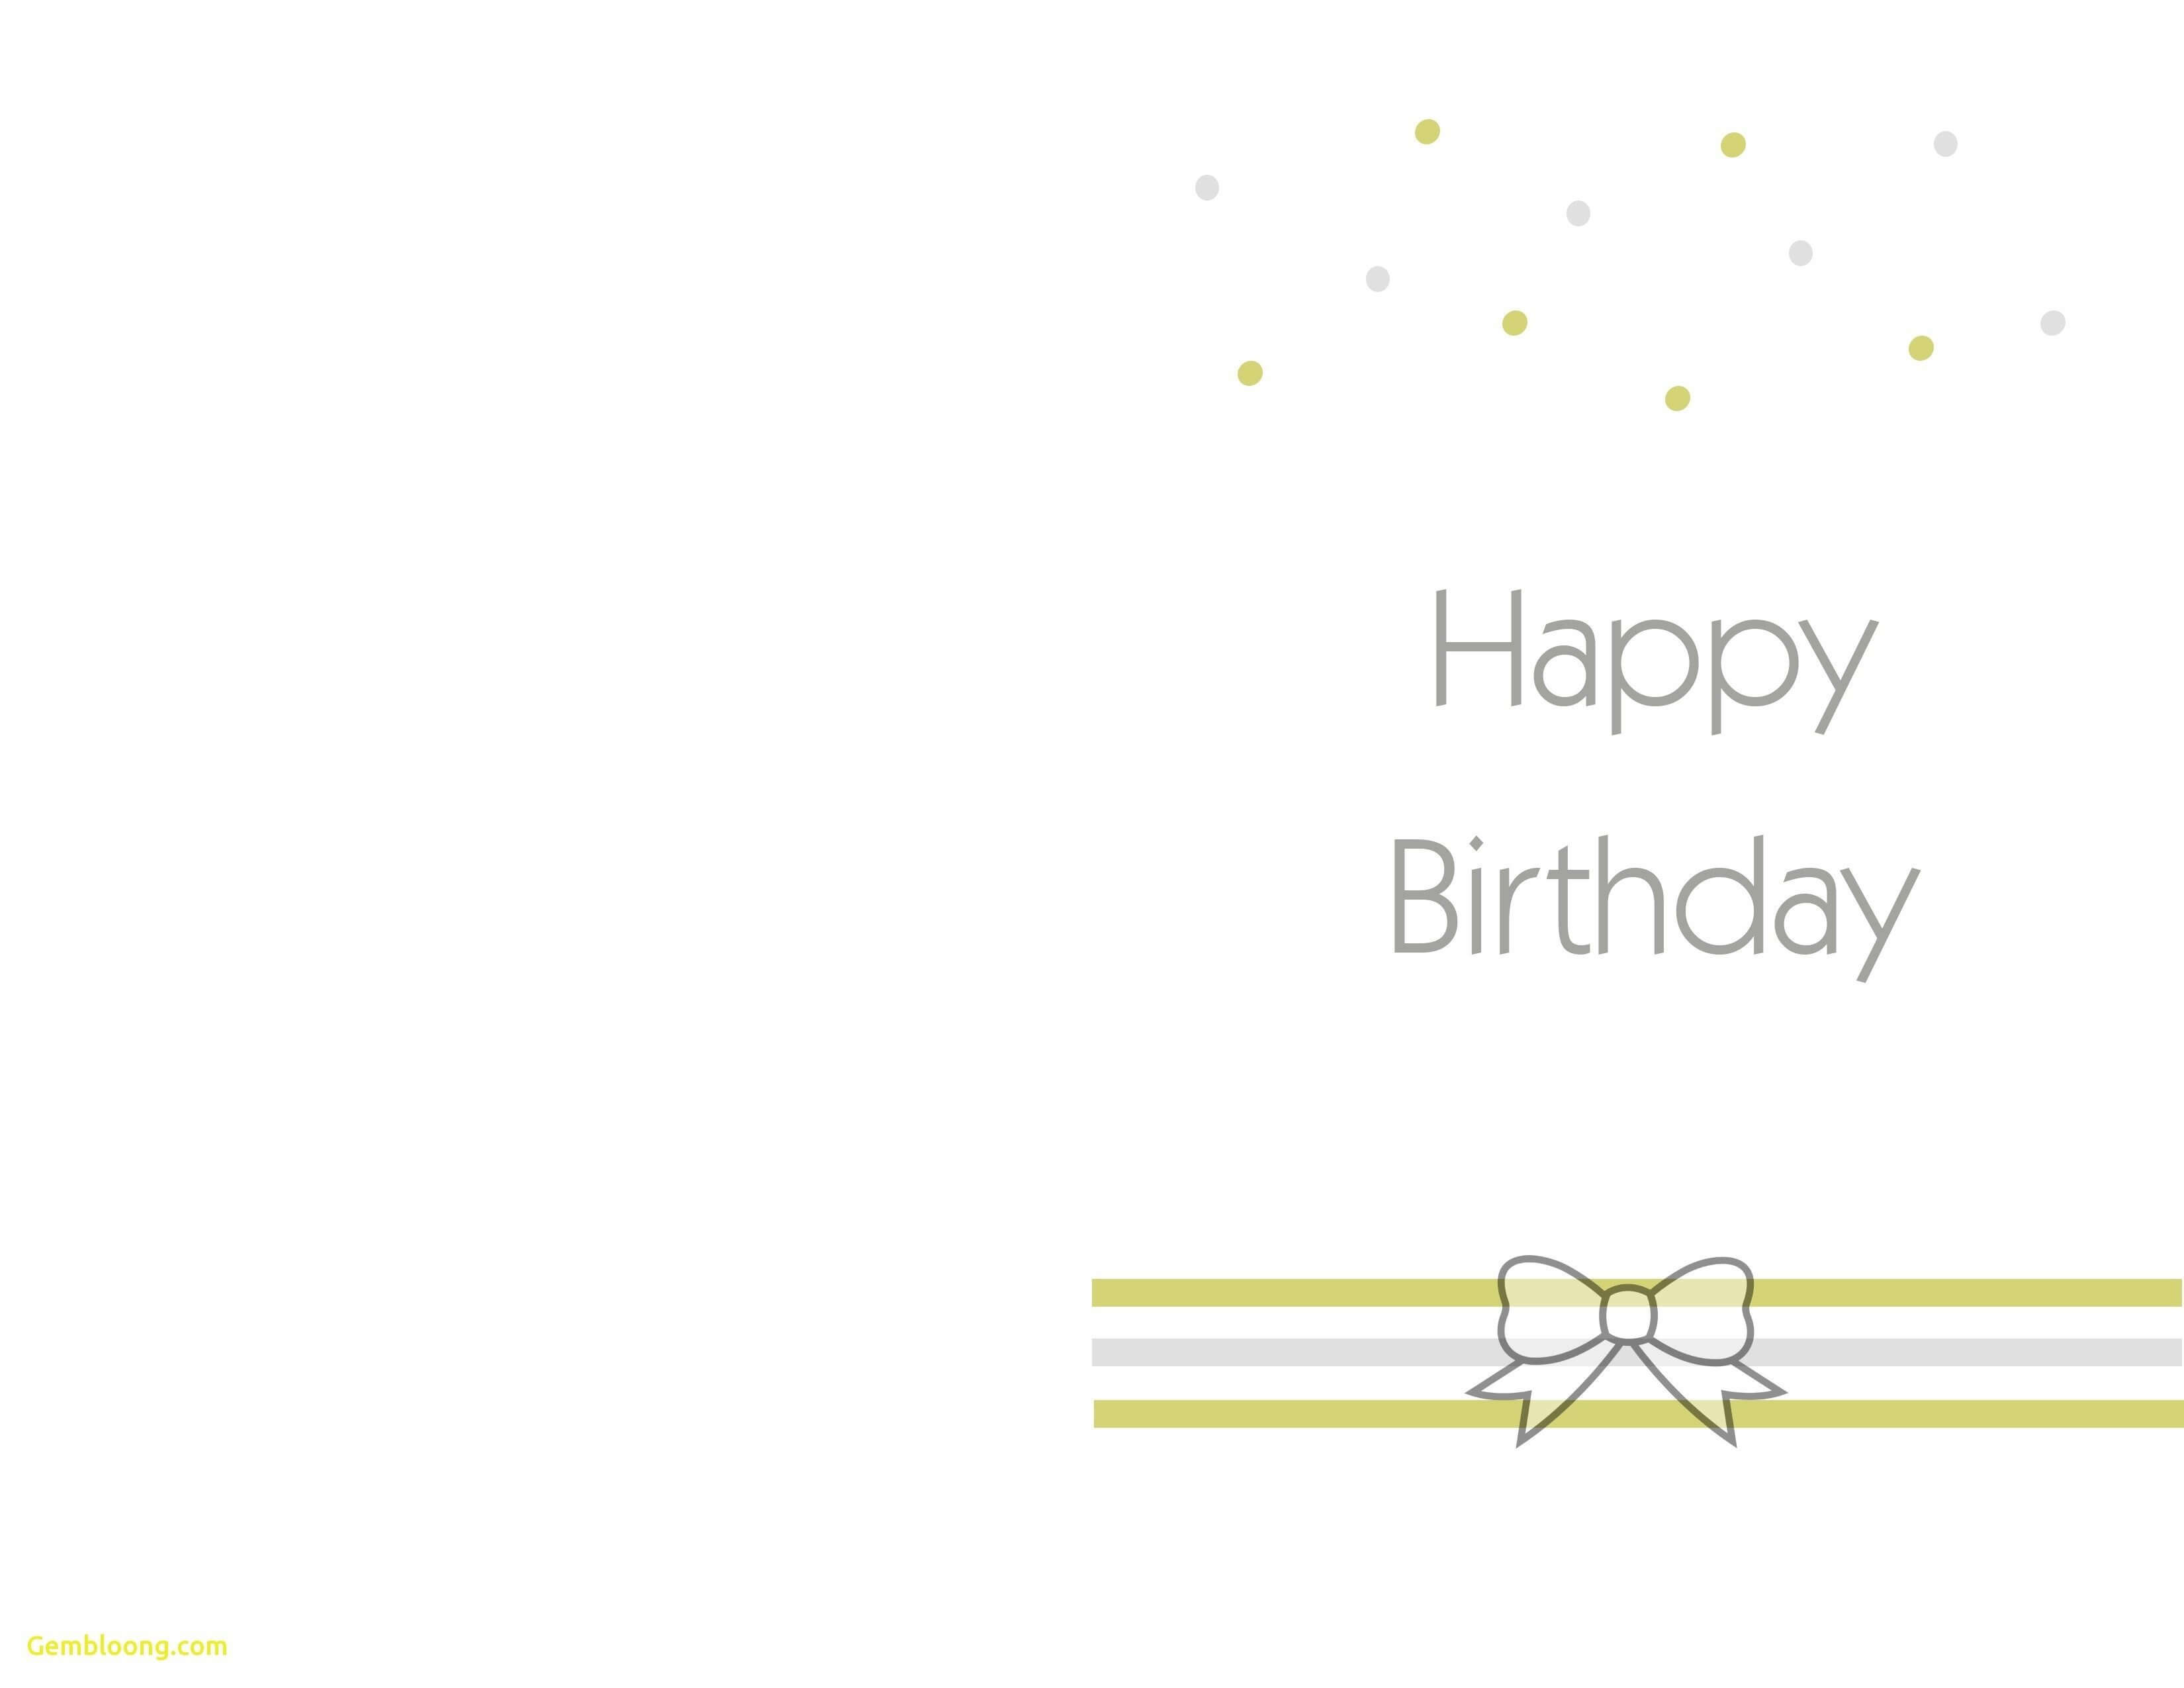 Printable Birthday Cards Foldable | Theveliger Intended For Card Folding Templates Free